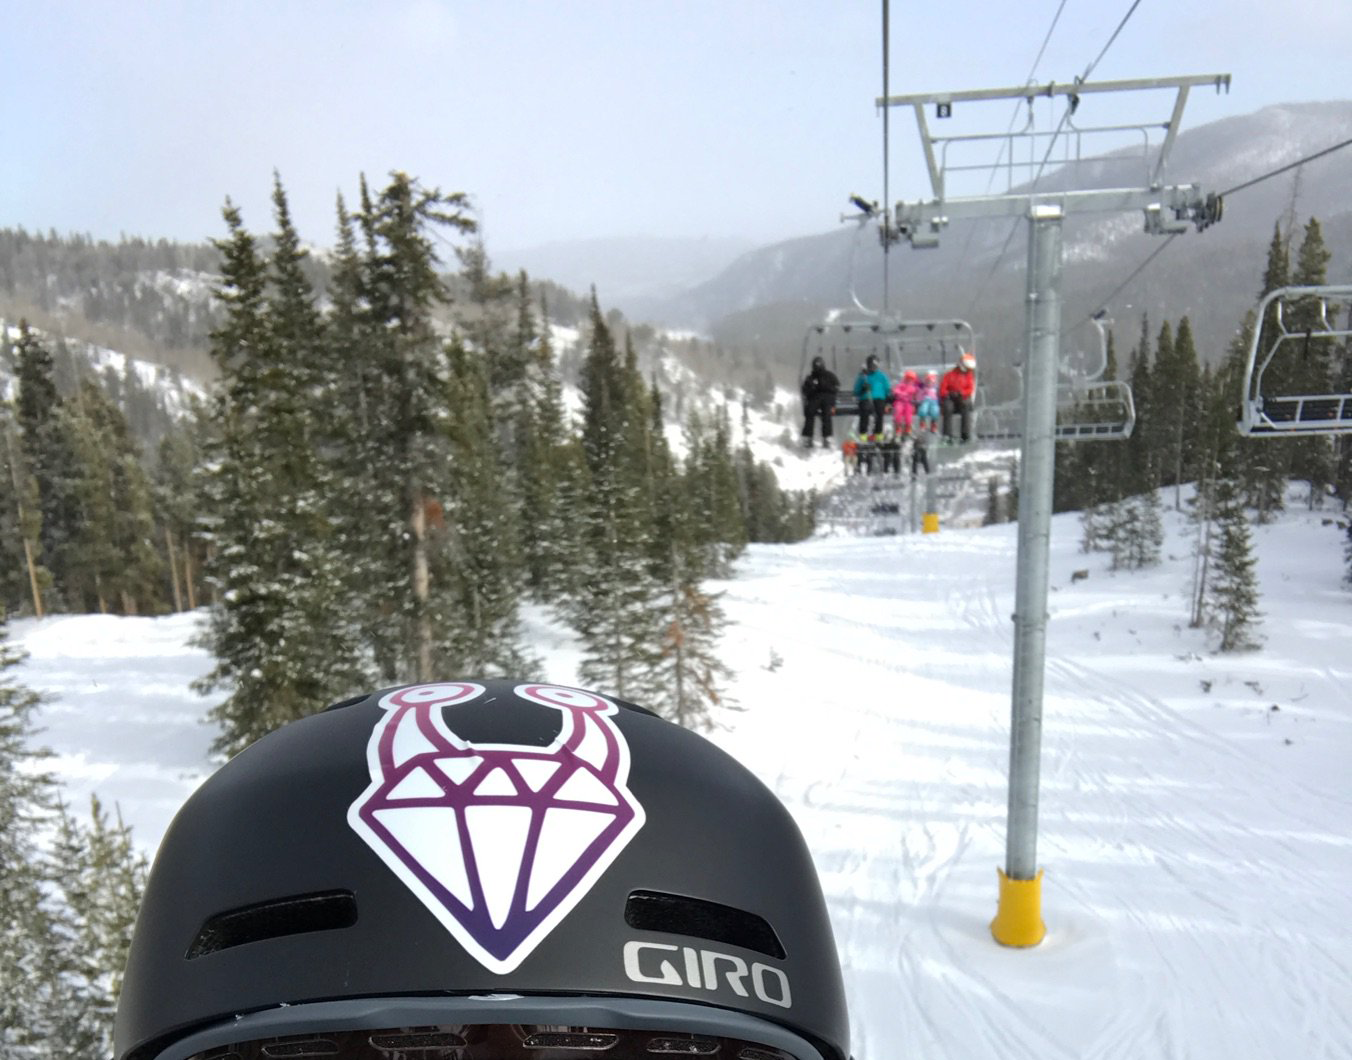 A Keep Ruby Weird sticker on a helmet in a snowy and woody area with a ski lift seat with five people behind